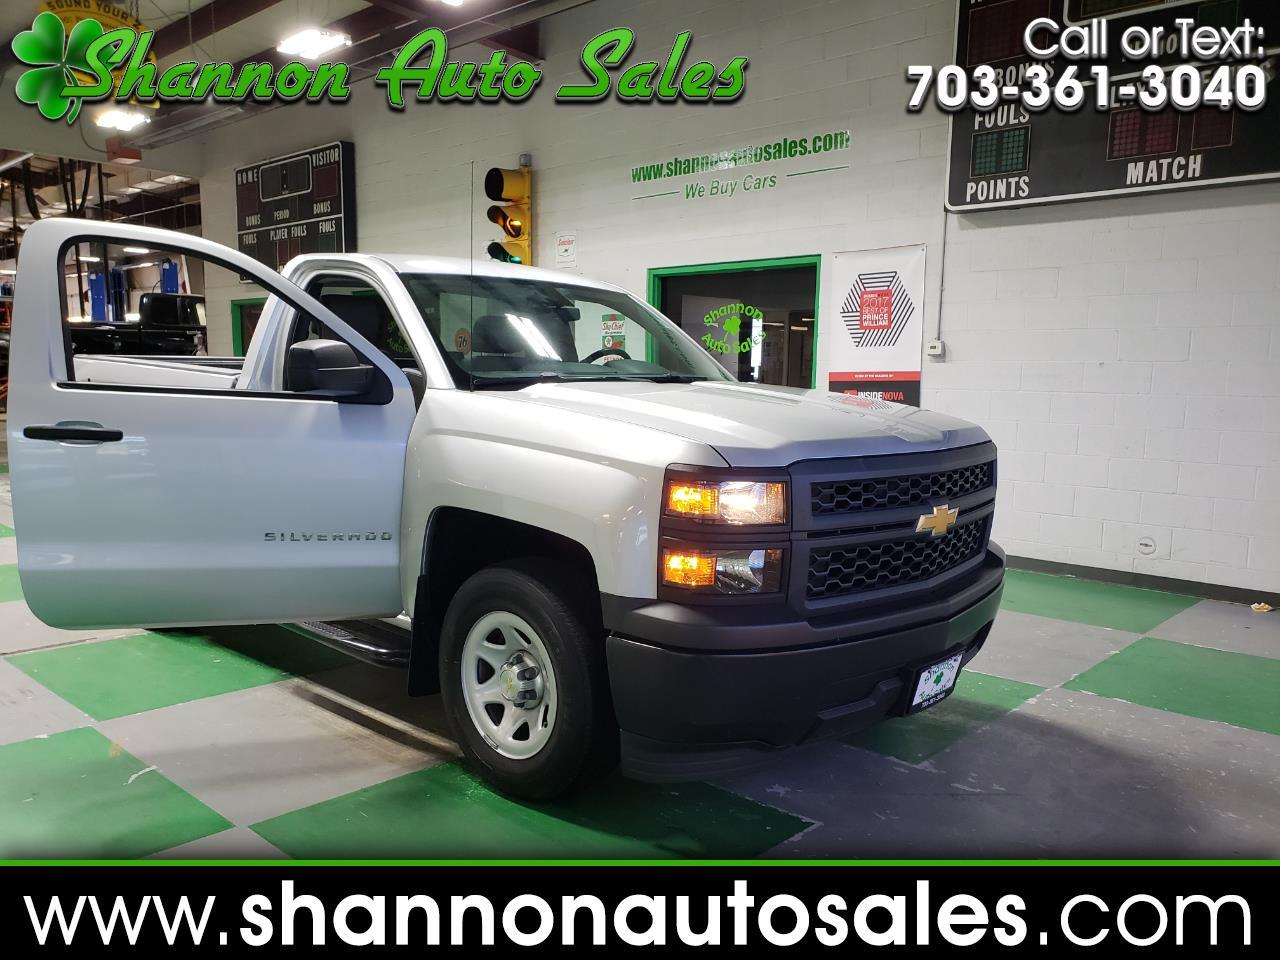 2014 Chevrolet Silverado 1500 Work Truck 2WT Regular Cab 2WD